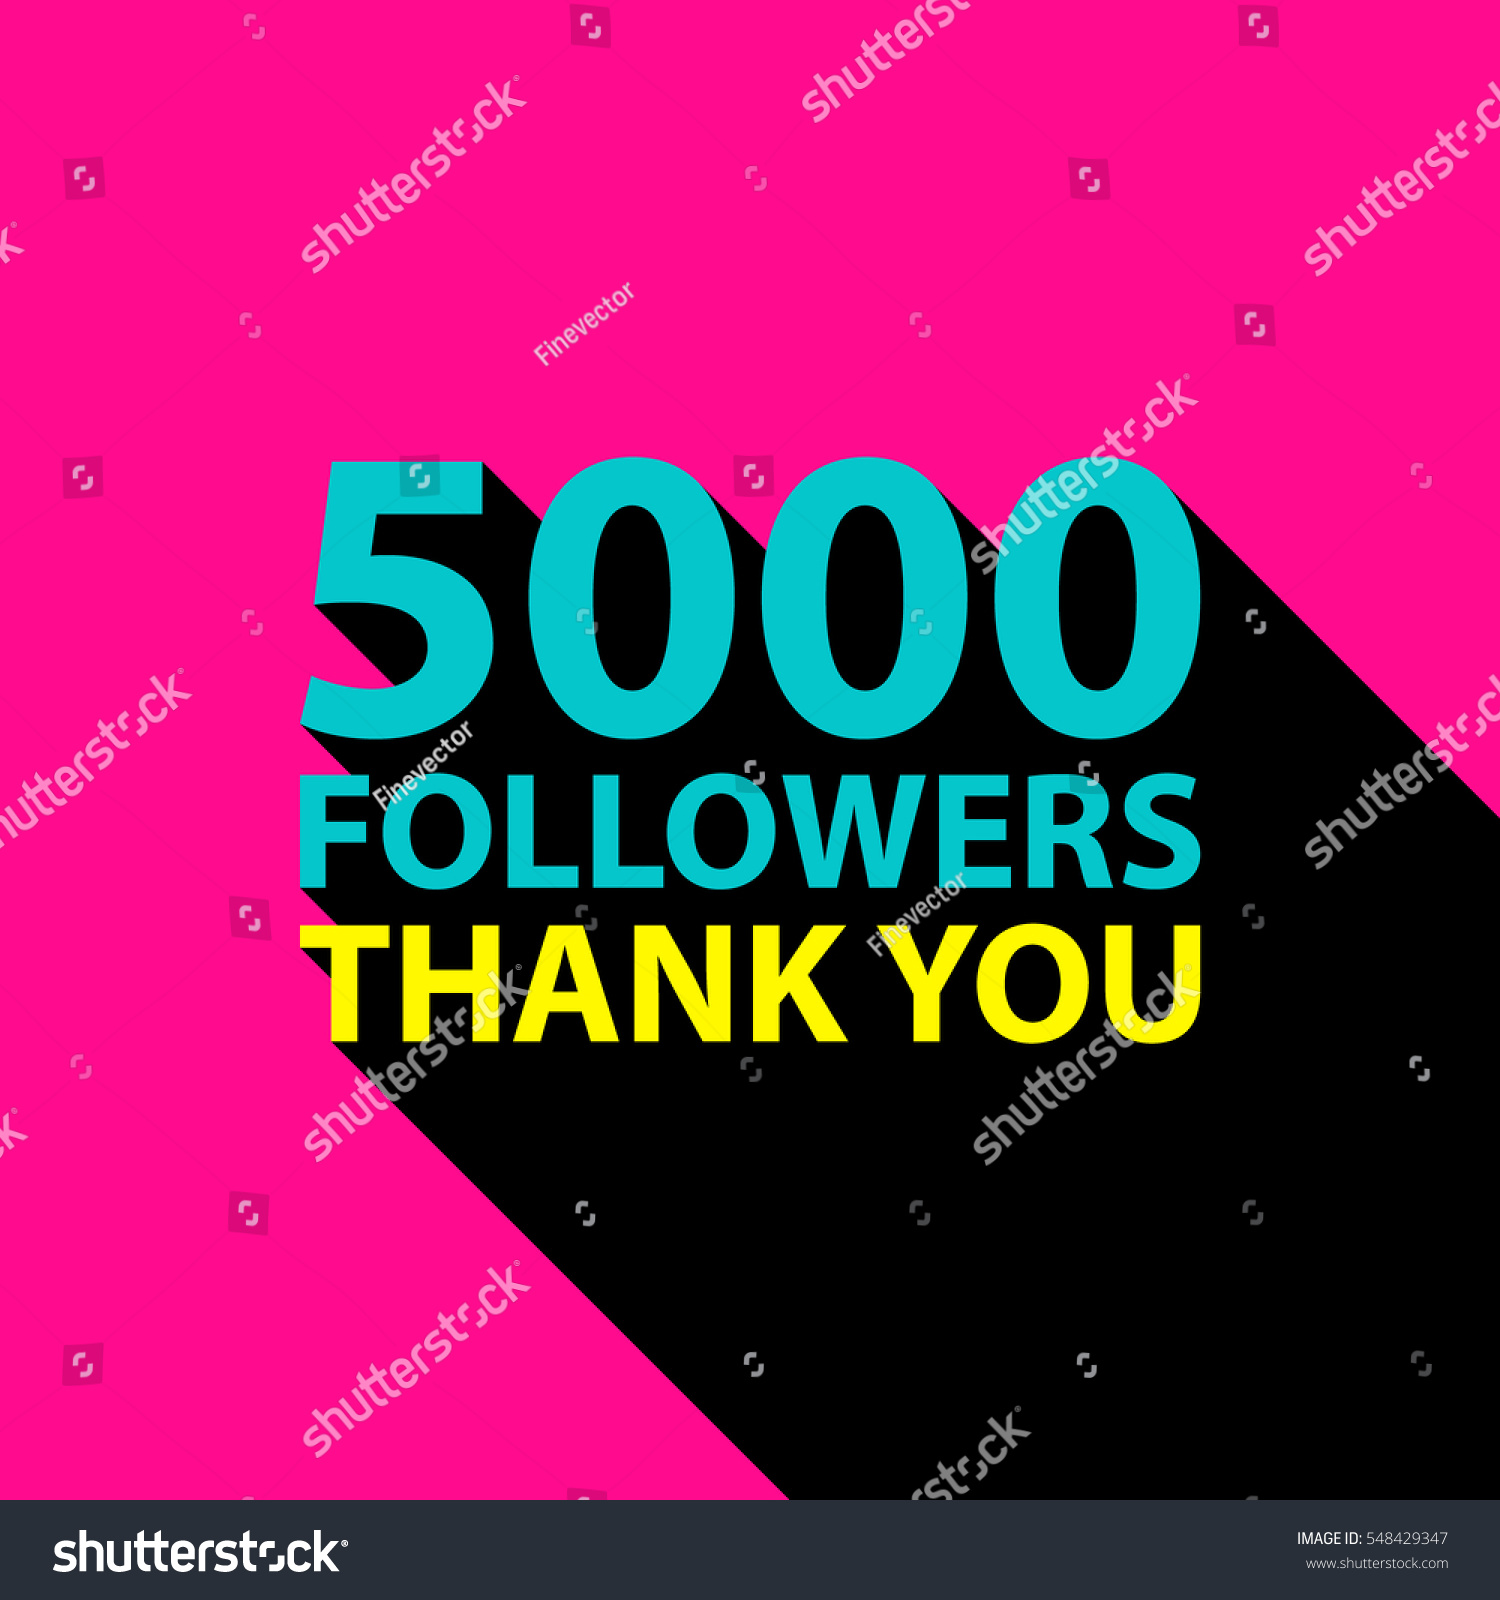 5000 followers thank you card template stock vector 548429347 5000 followers thank you card template stock vector 548429347 shutterstock pronofoot35fo Images